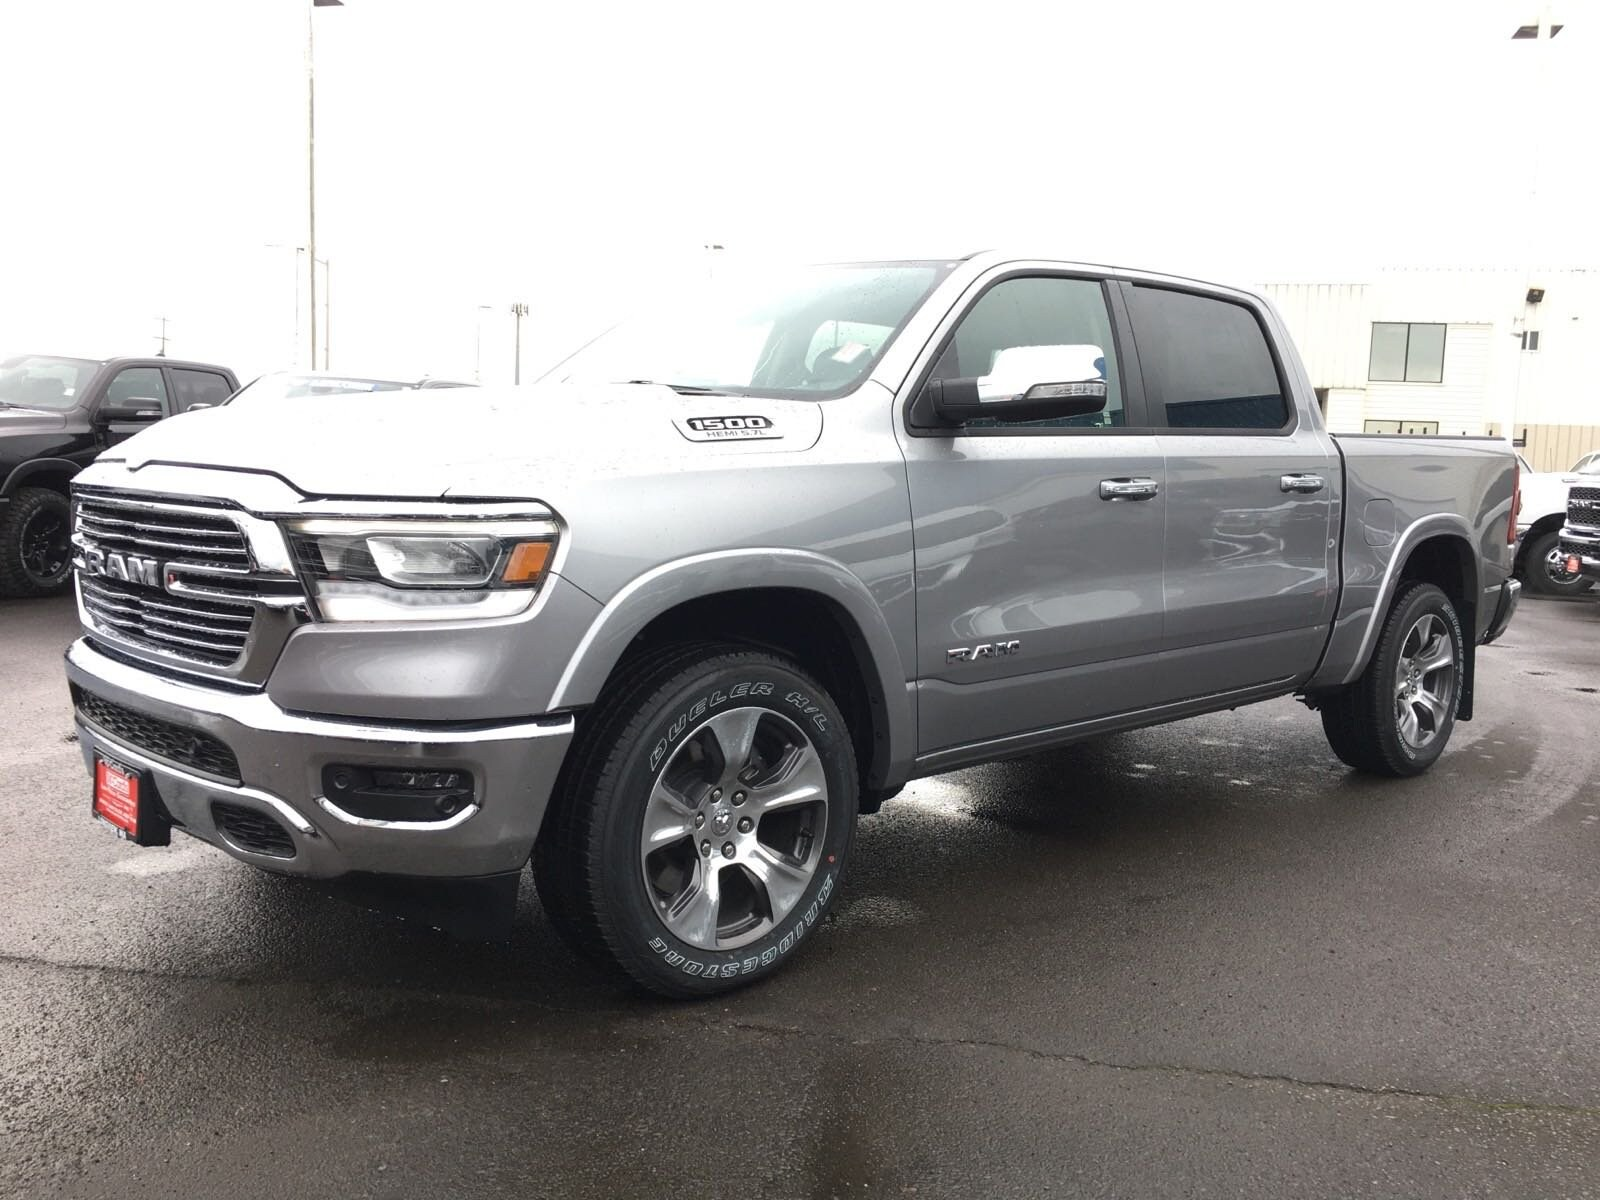 2020 Ram 1500 Crew Cab 4x4, Pickup #R1930 - photo 1